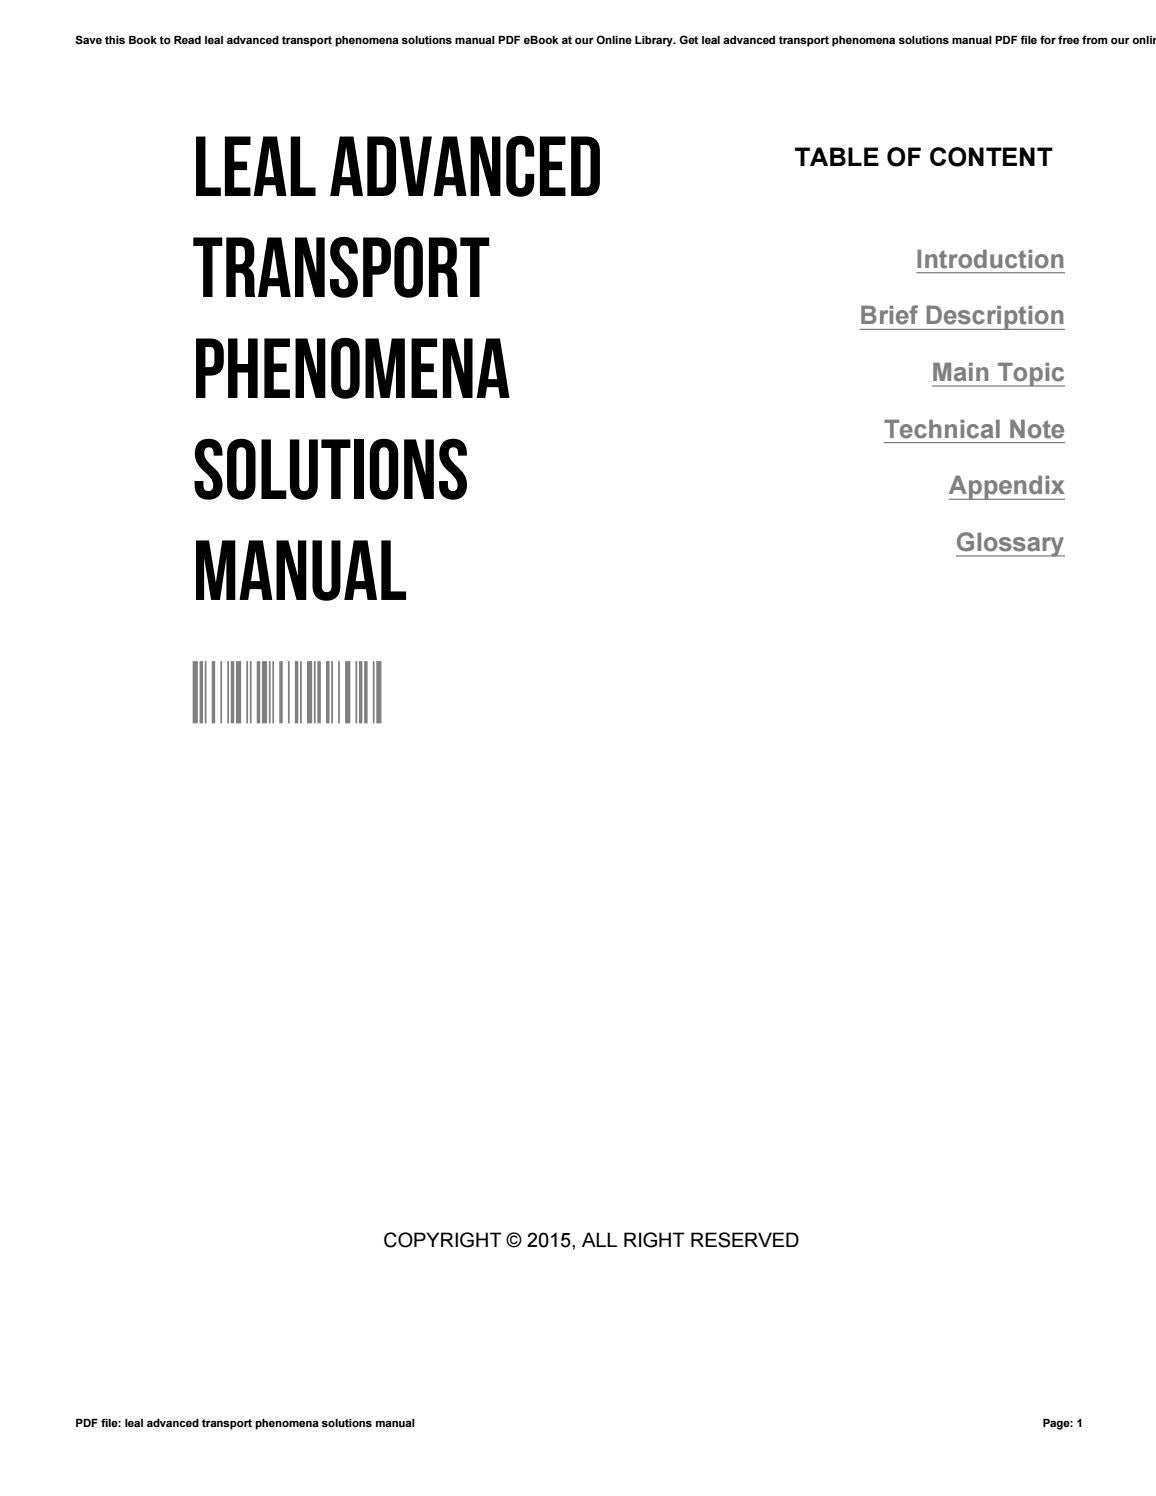 Leal advanced transport phenomena solutions manual by SusanLucas4421 - issuu